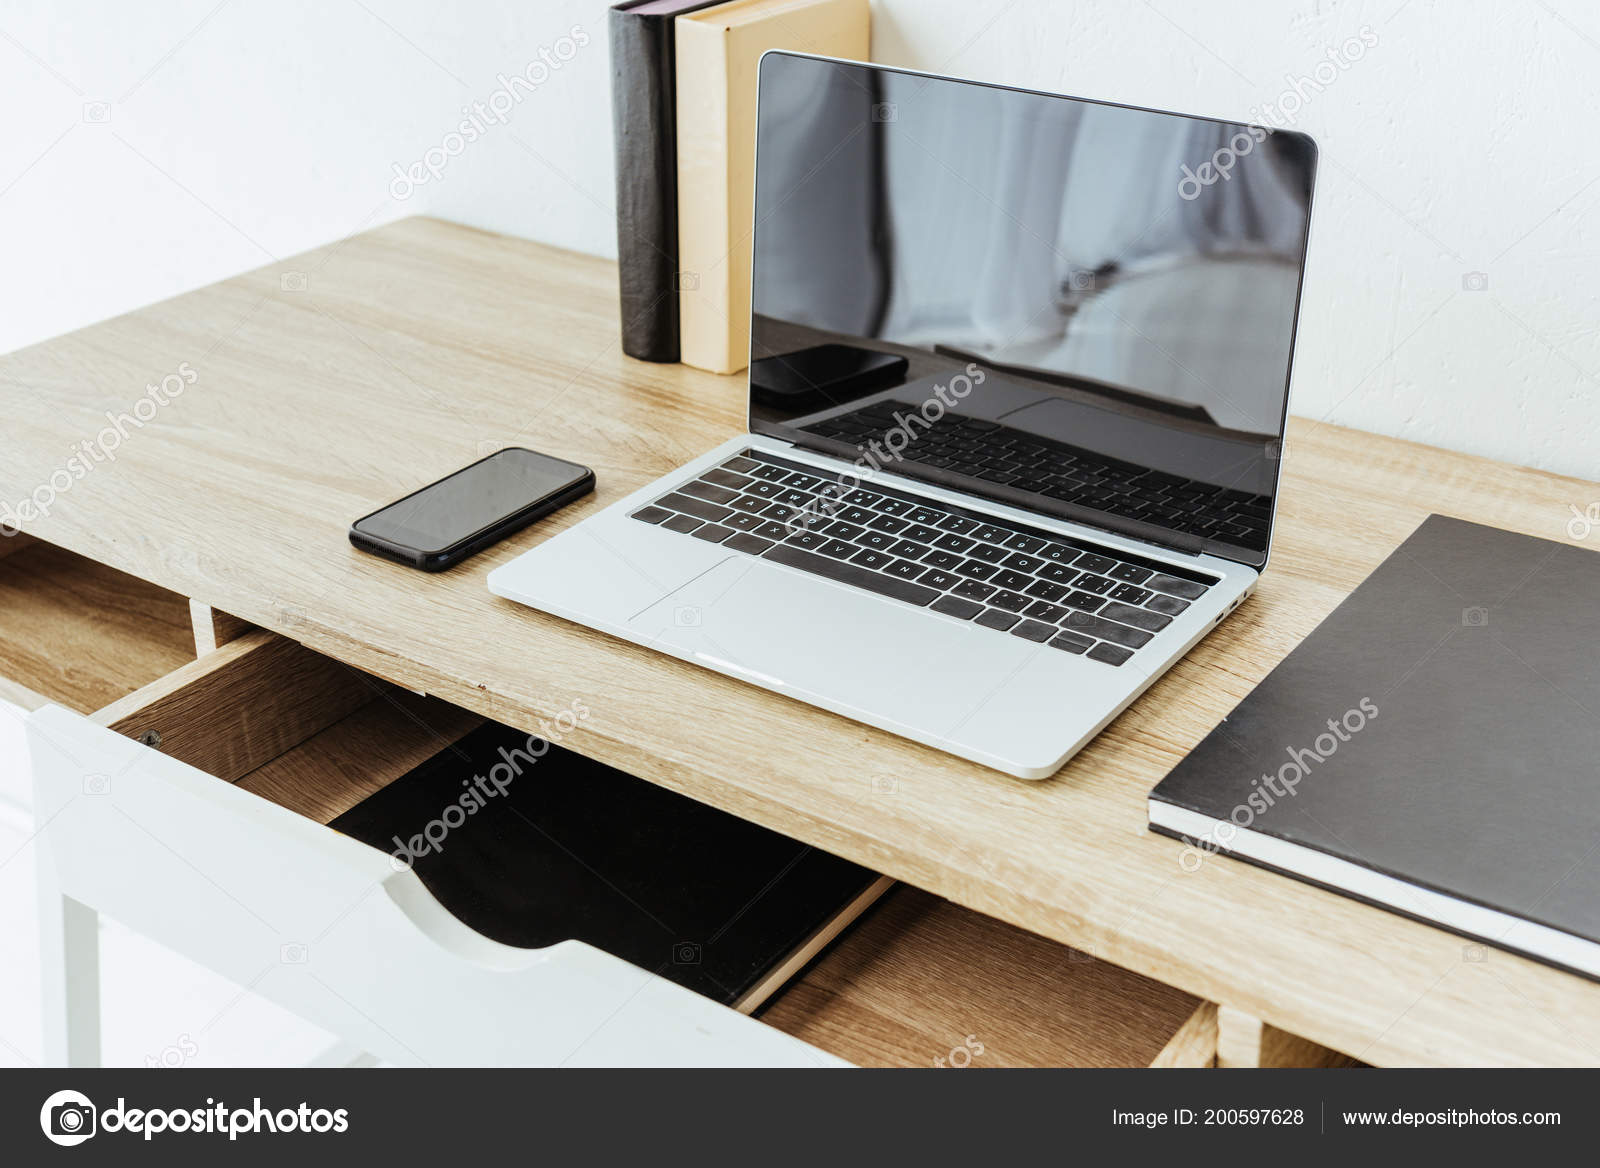 Pleasant Laptop Smartphone Books Work Desk Office Stock Photo C Y Download Free Architecture Designs Ogrambritishbridgeorg